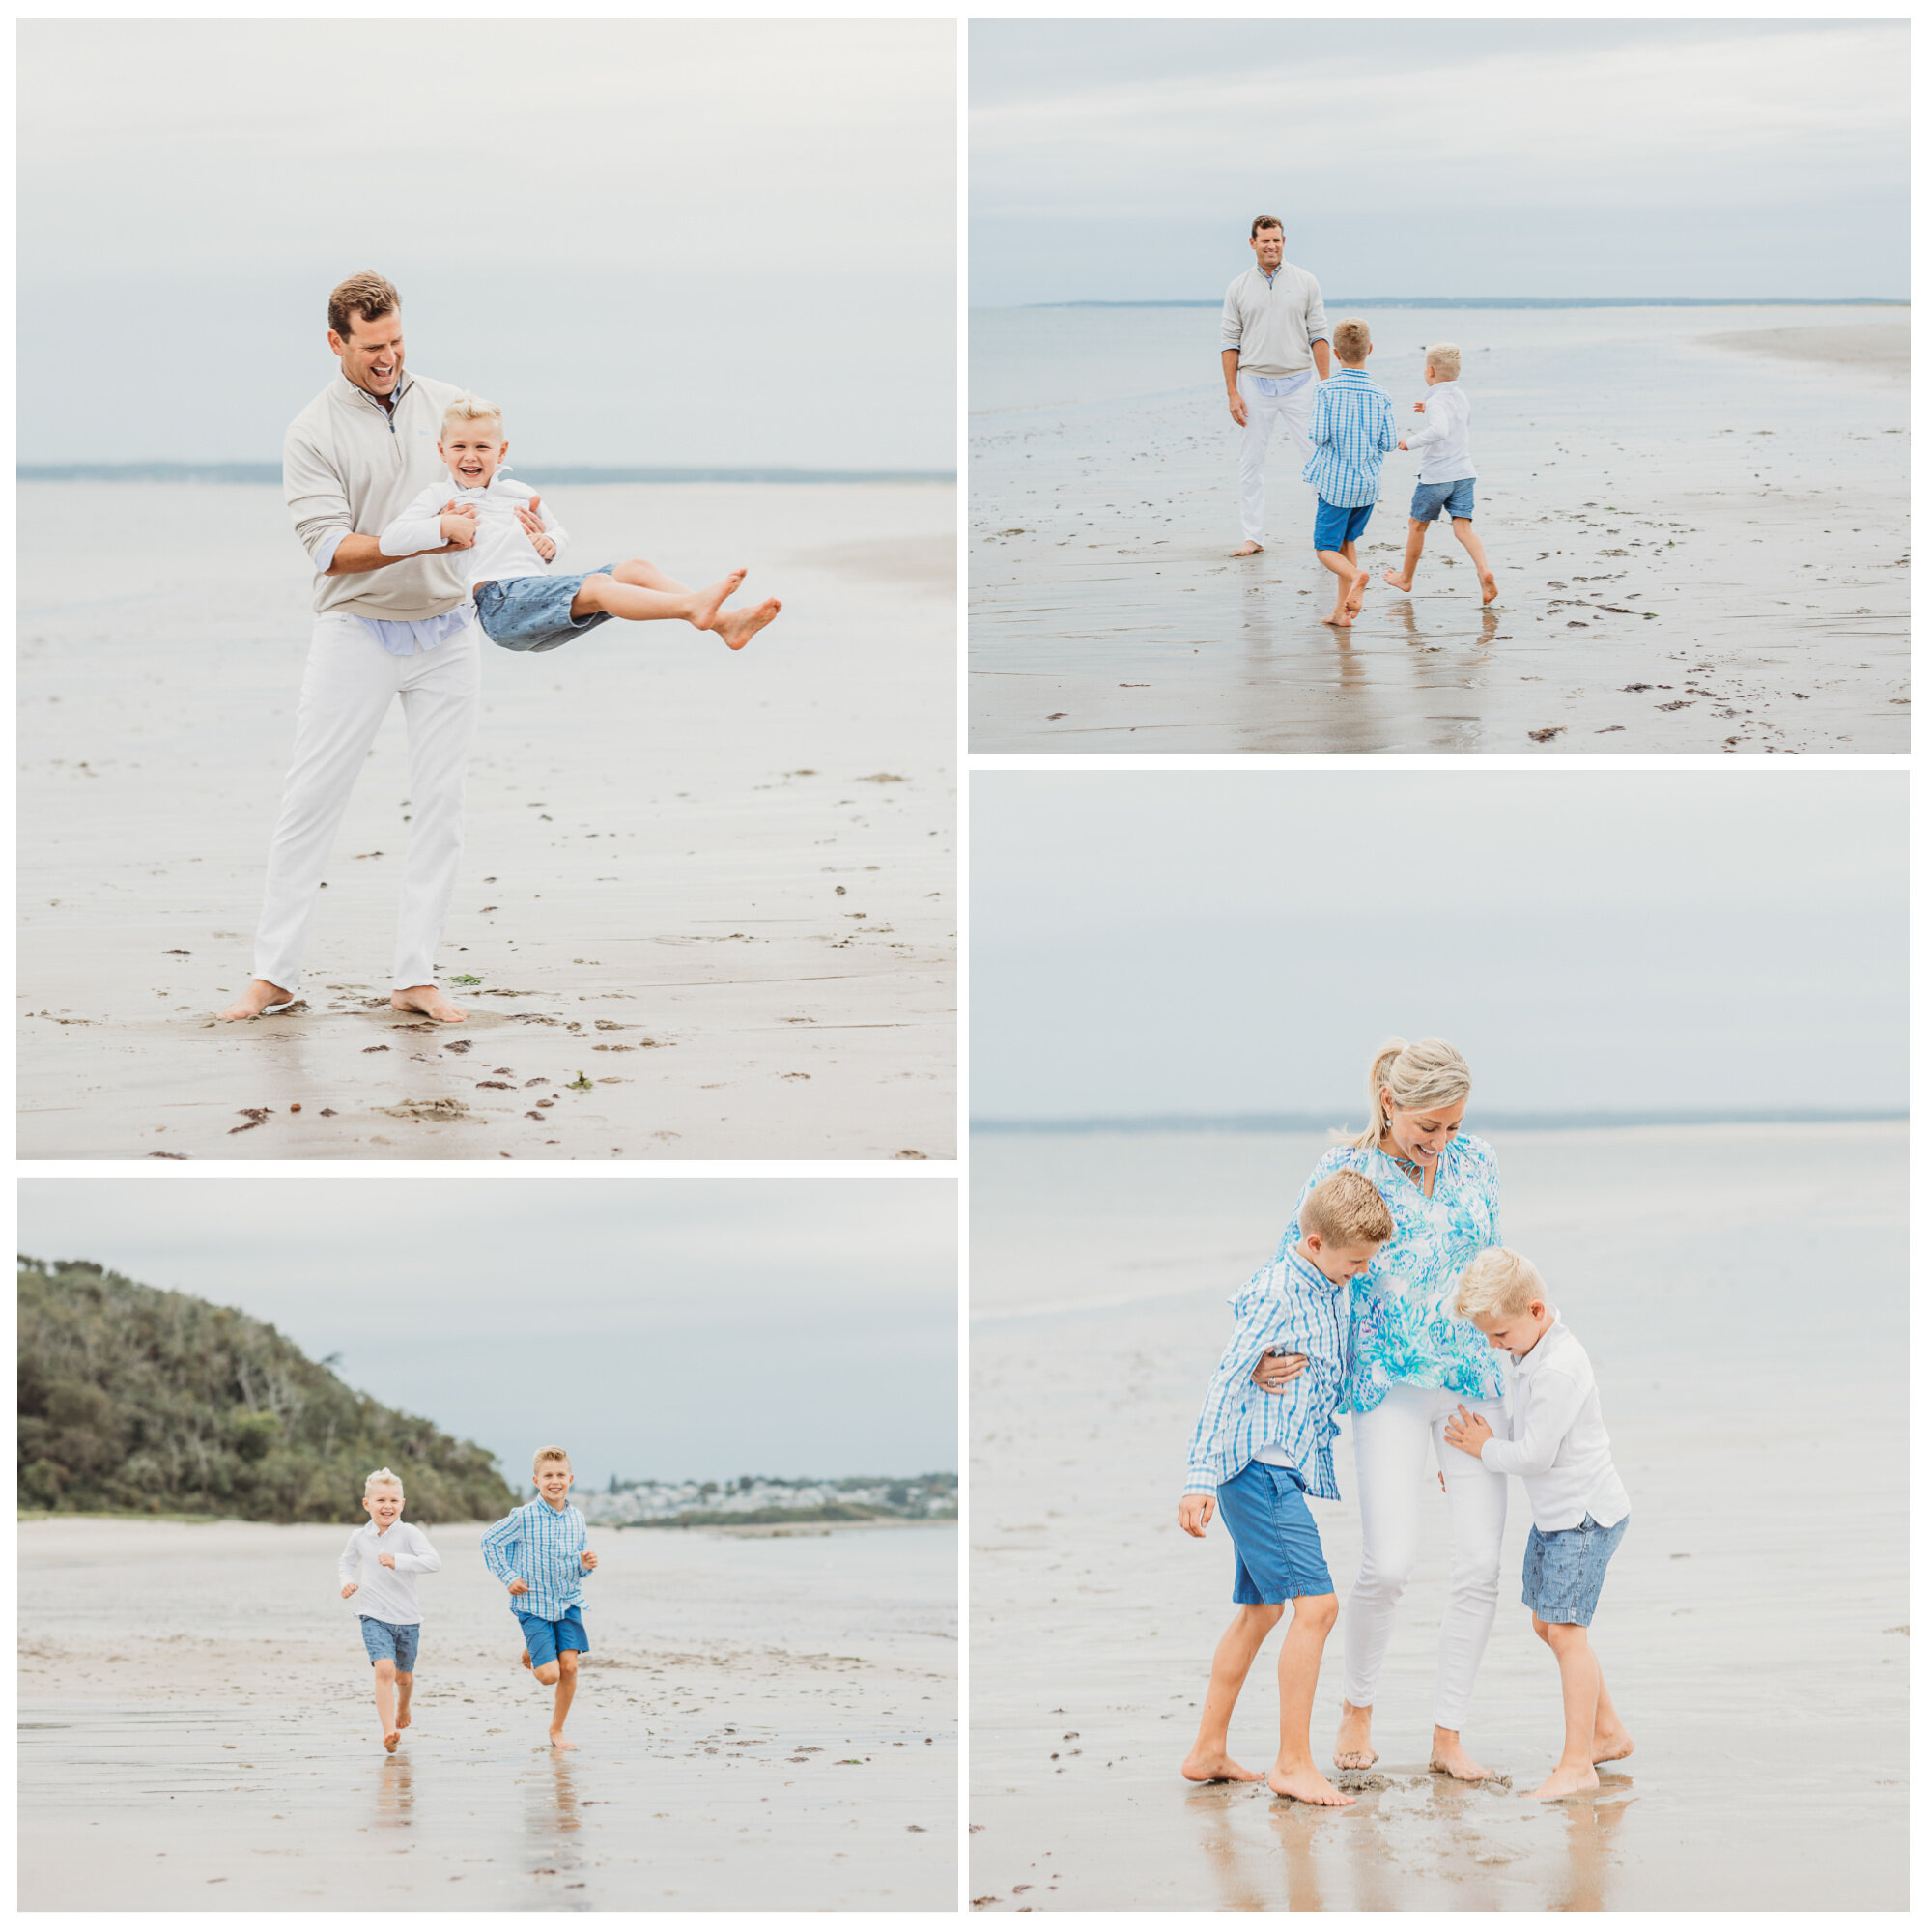 A collage of photos from a Wellesley family's beach day session on a cloudy September day.